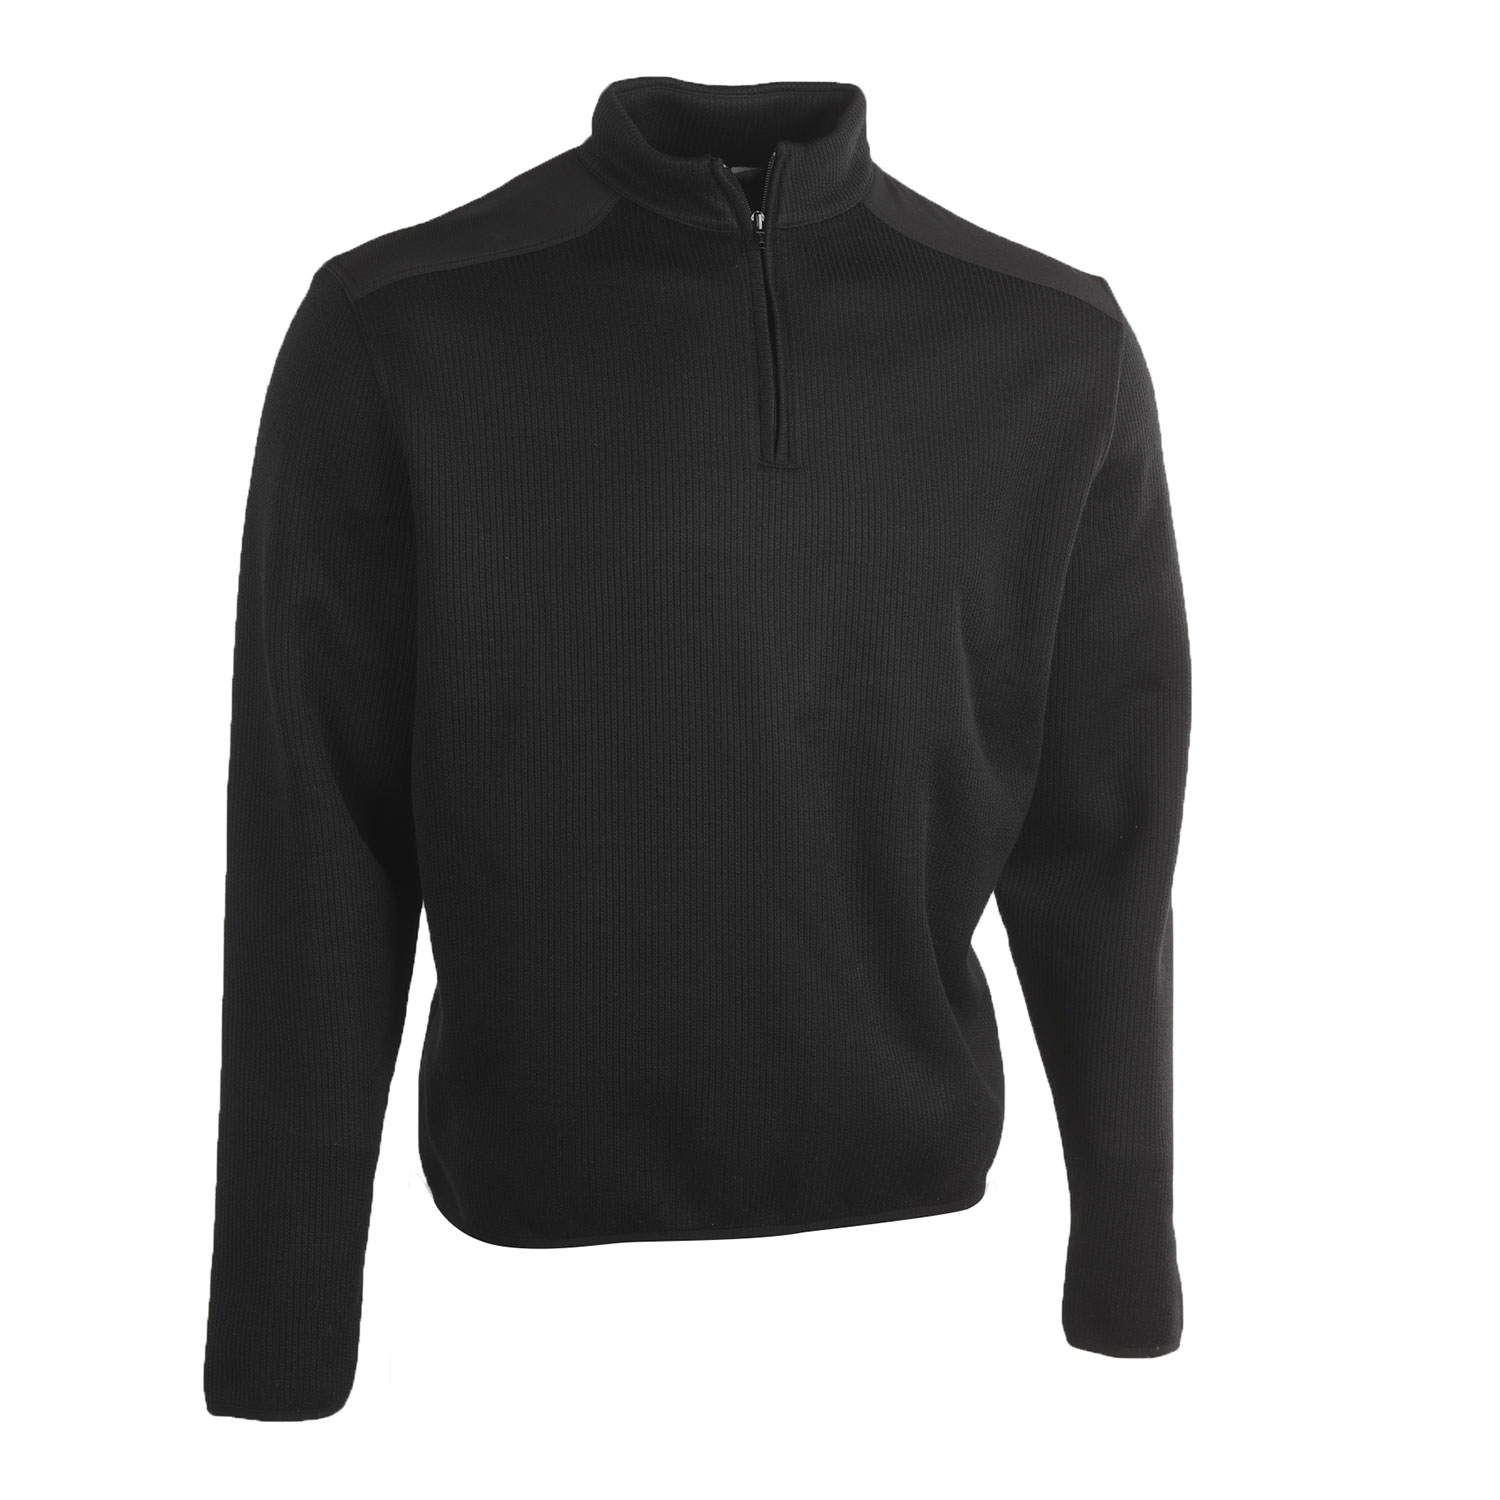 Flying Cross Quarter Zip Fleece Sweater